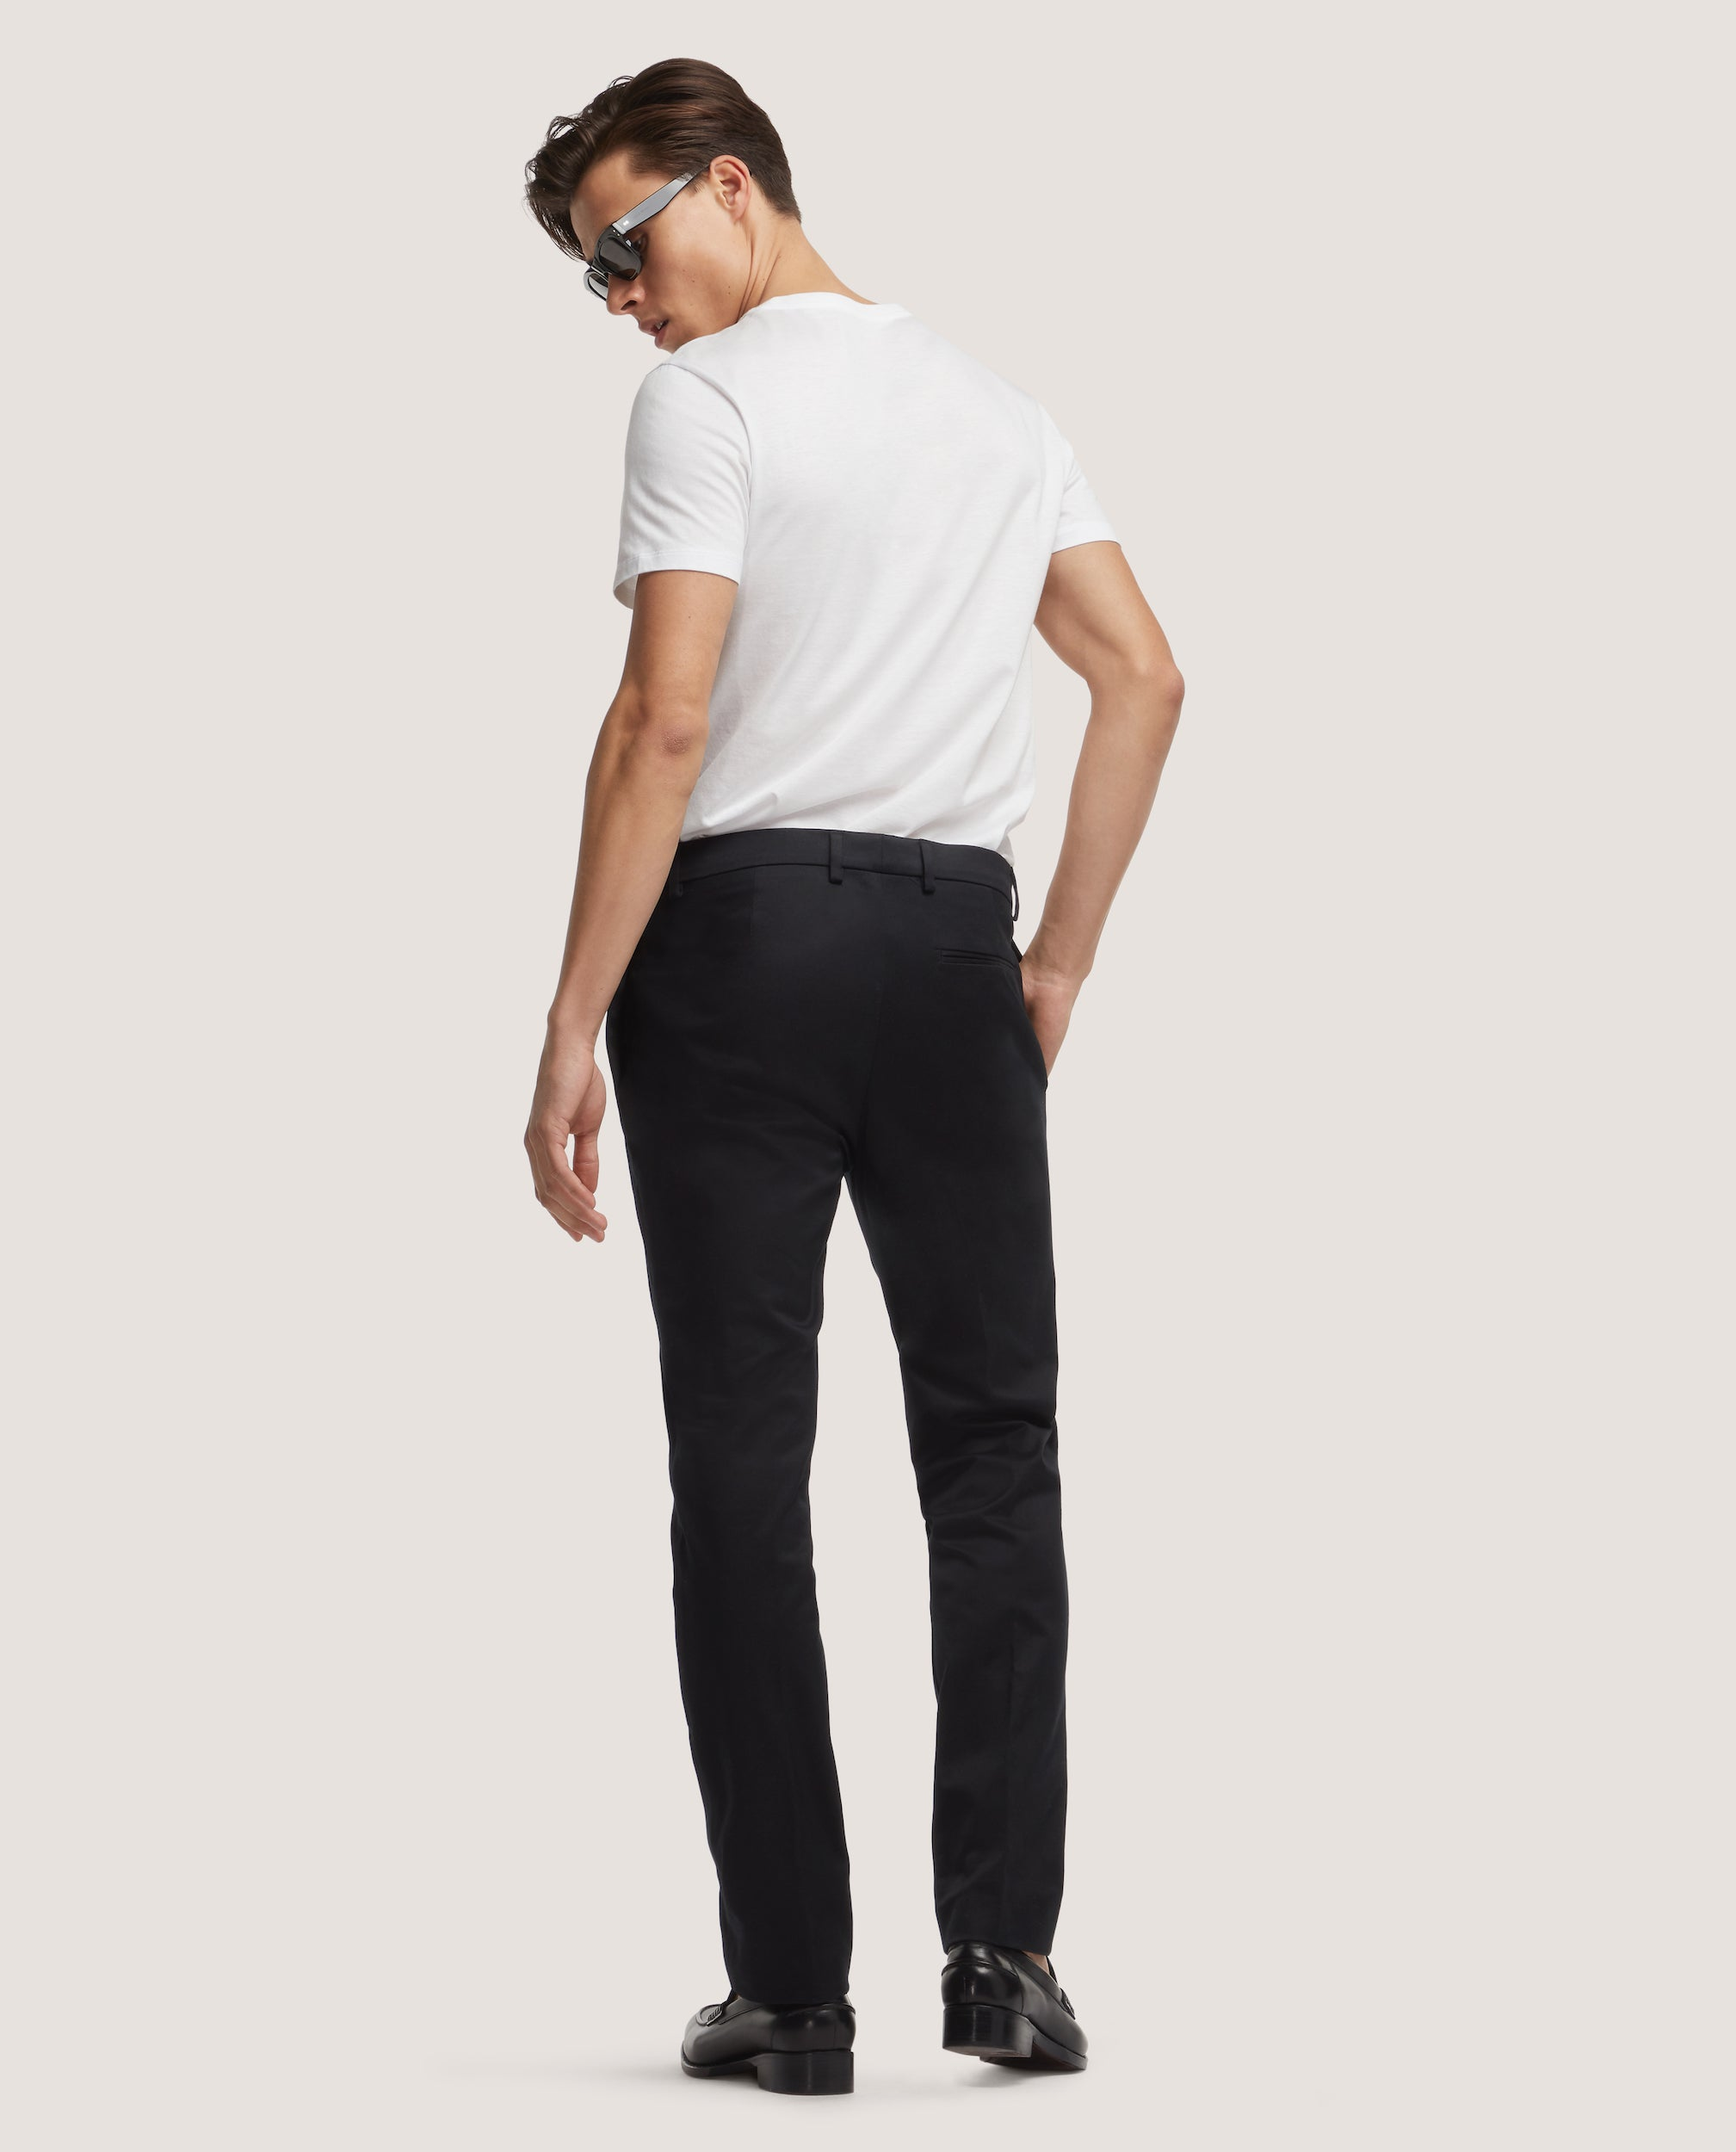 CASS Chino trousers | Slim fit | Cotton twill | Black